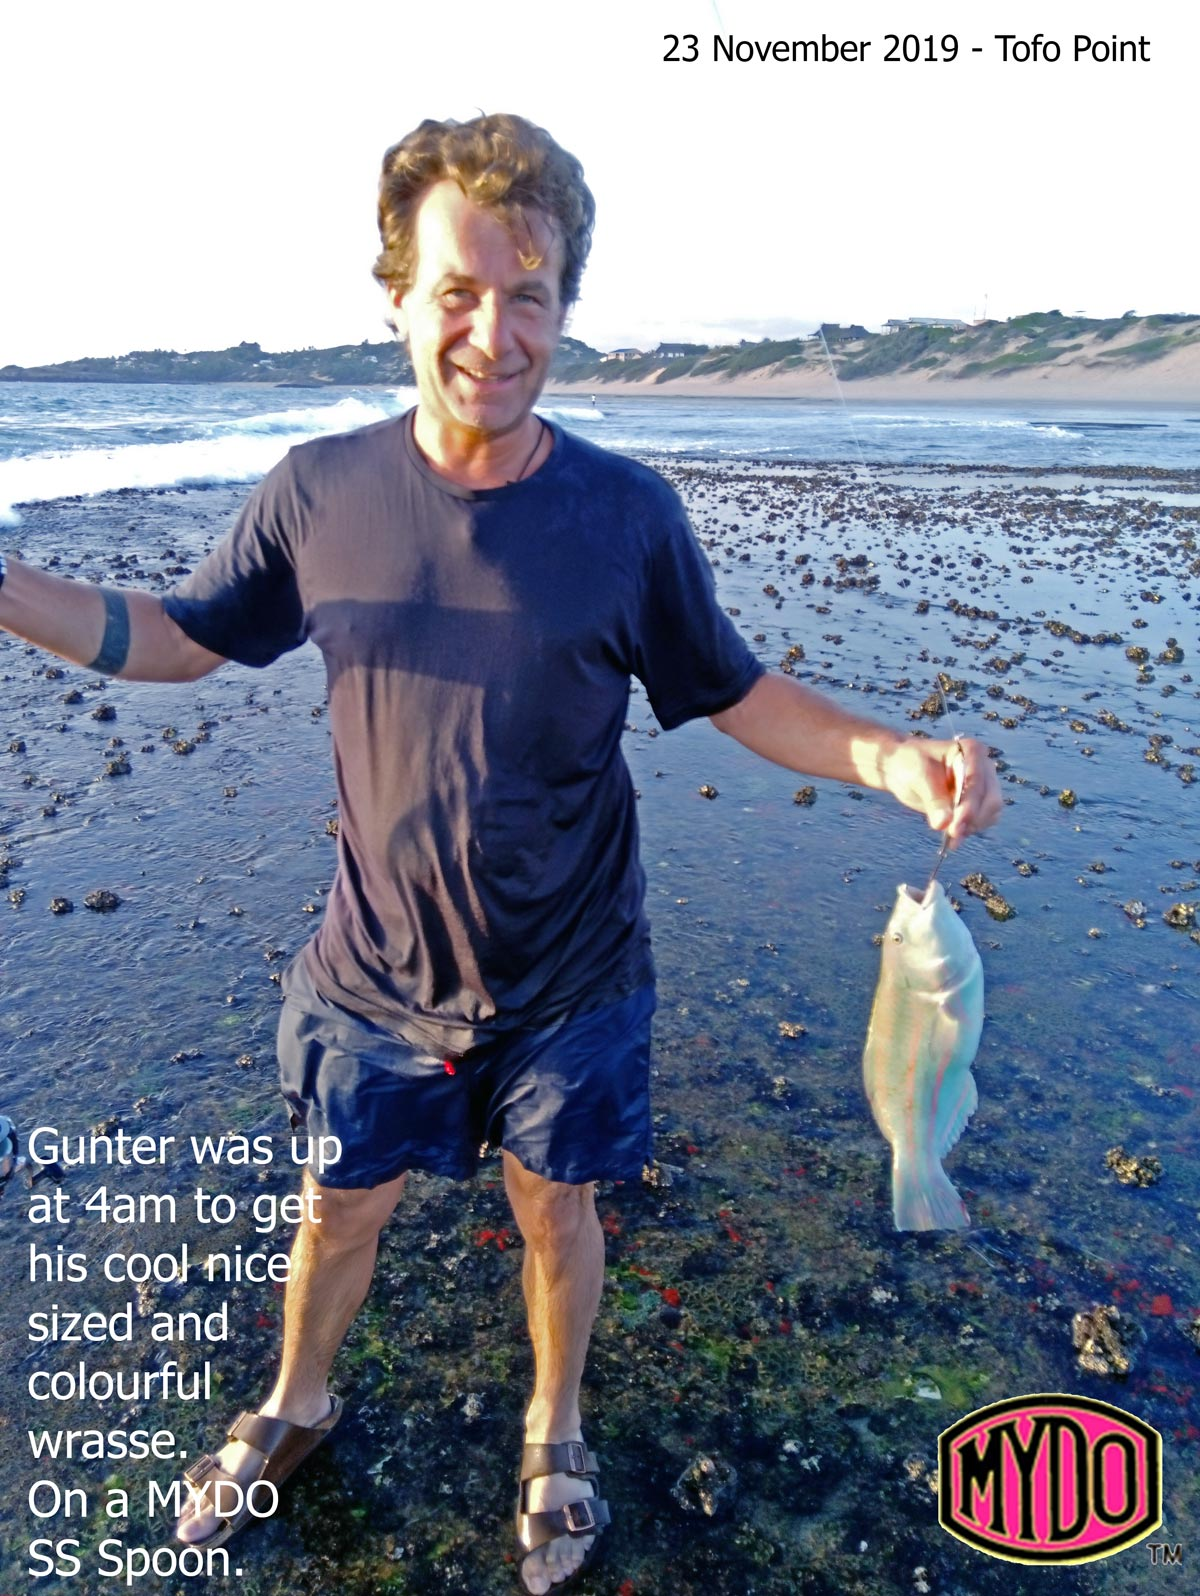 Gunter and his lekker wrasse caught at Tofo with a Mydo SS Spoon